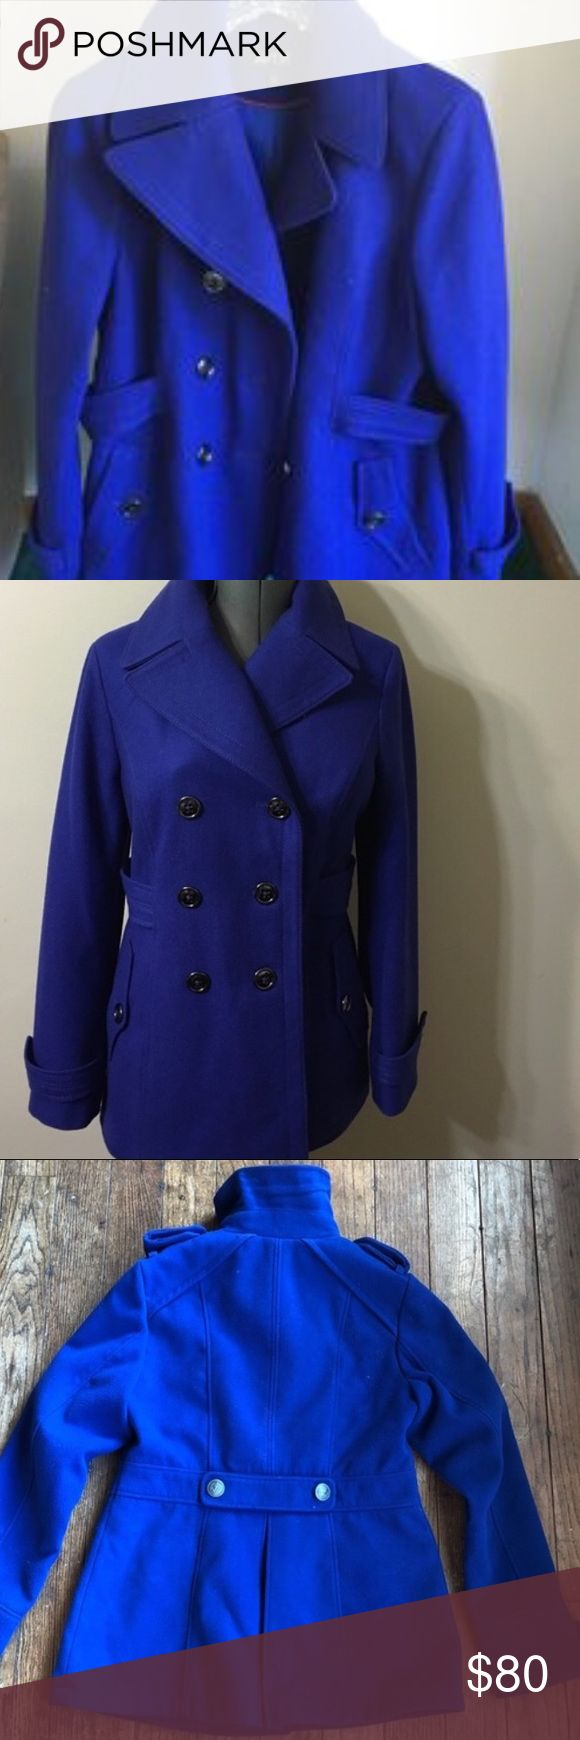 Midnight blue pea coat Aides women's blue pea coat with metal nautical buttons -accents like new mint condition jacket long sleeve sweater cold weather packable chic vintage inspired elegant casual business attire office going out formal dress dressy overcoat great quality material and very flattering cut & design will fit a variety of body types fits around your curves and shapes gives great silhouette wear over jeans and a tee or a gown with heels. For any event classic staple closet piece…